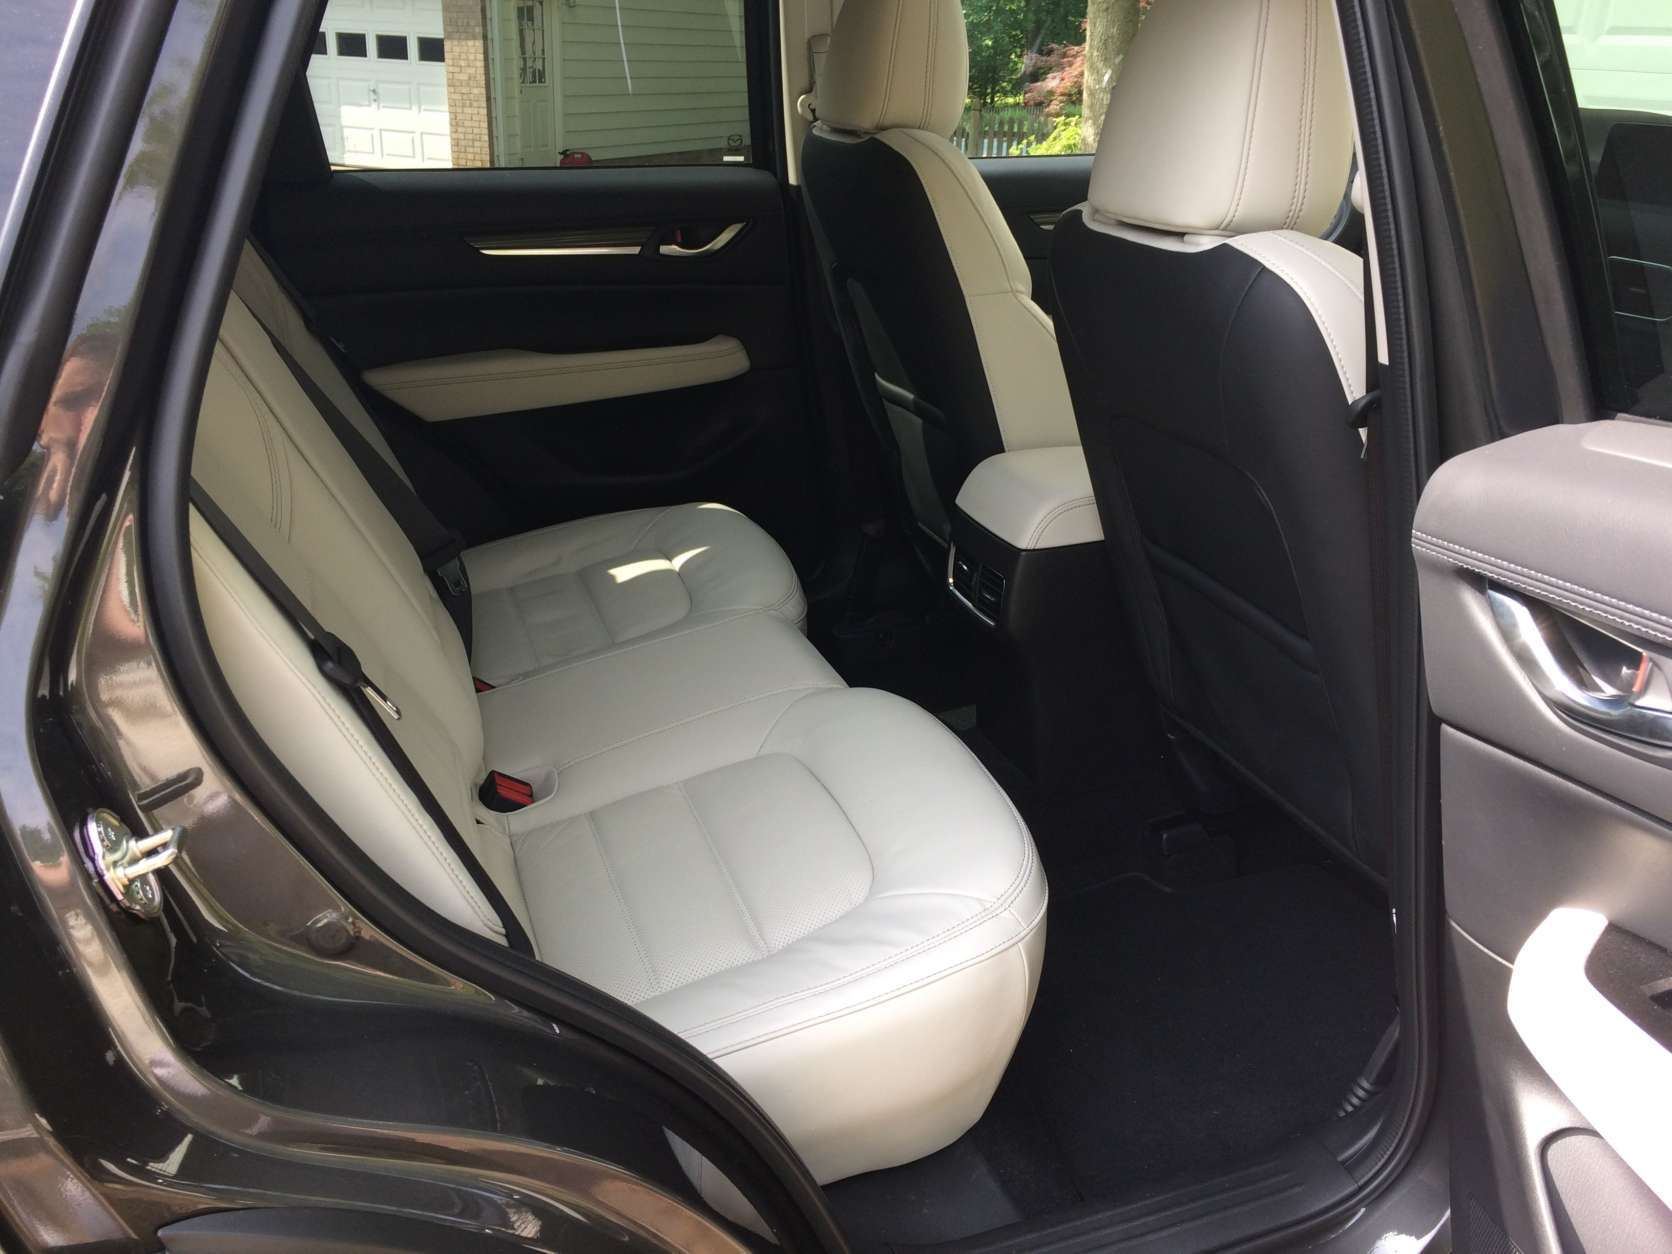 The heated leather sport seats are a very good quality, supportive and comfortable. Parris had the optional premium package that adds heated rear seats, a heated steering wheel and a windshield wiper de-icer. (WTOP/Mike Parris)